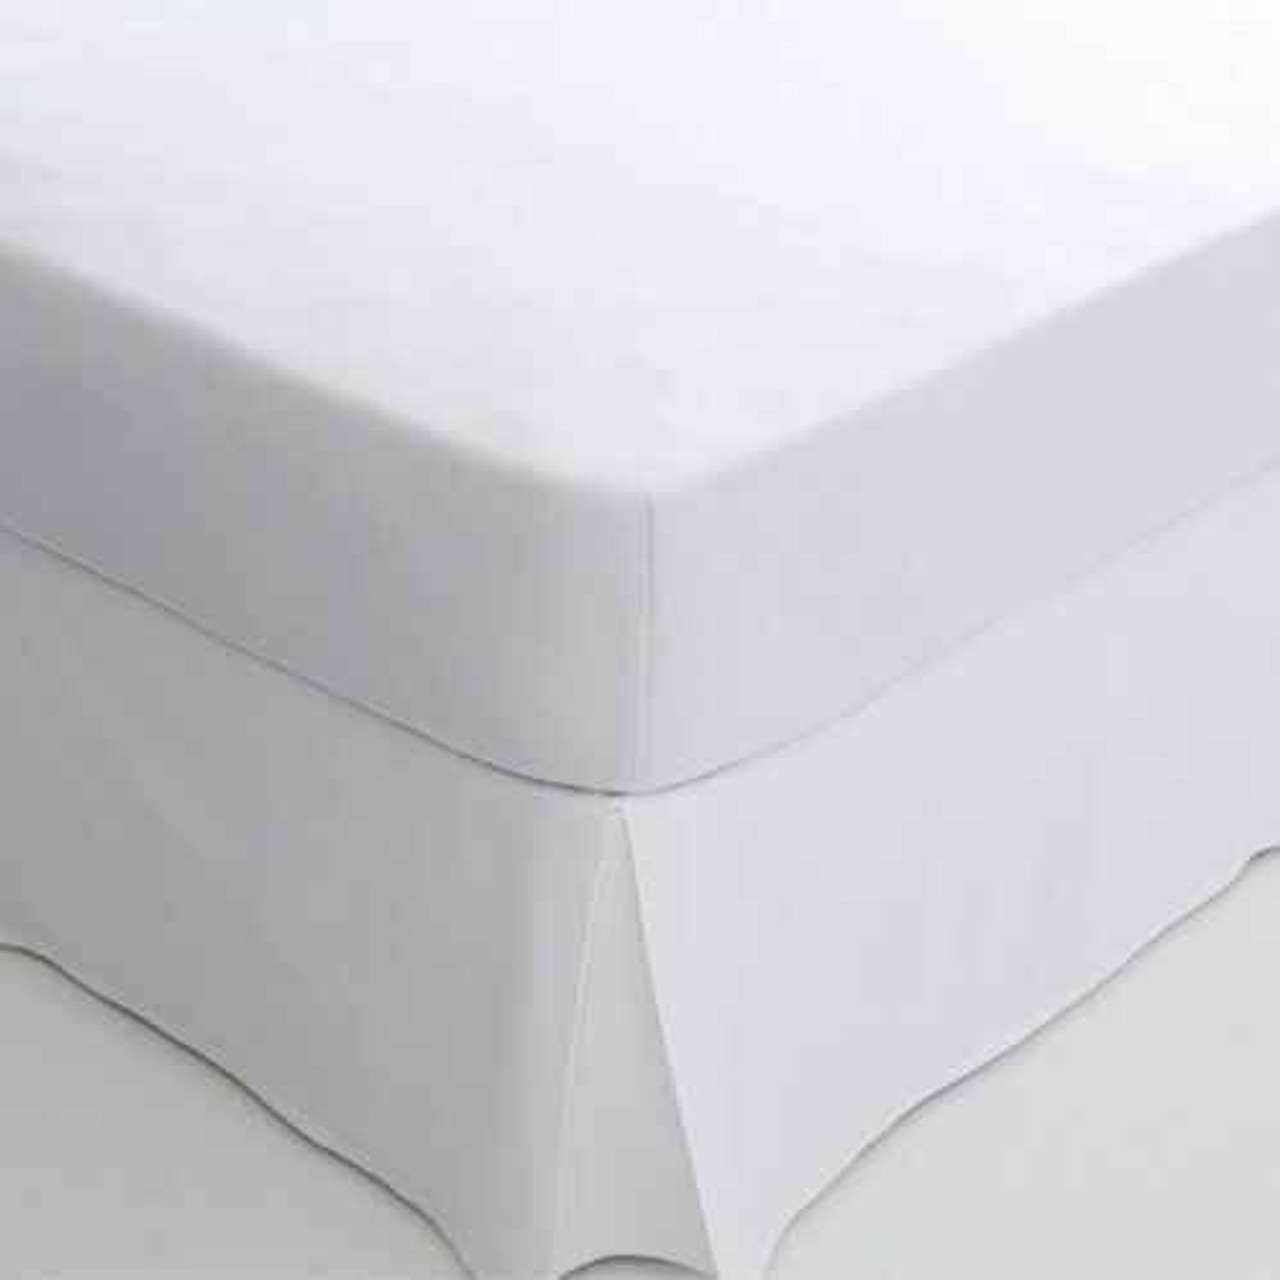 WestPoint/Martex Westpoint or Tough One Fiber Woven Blanket orMattress Pad or FLAT or Pack of 6-12